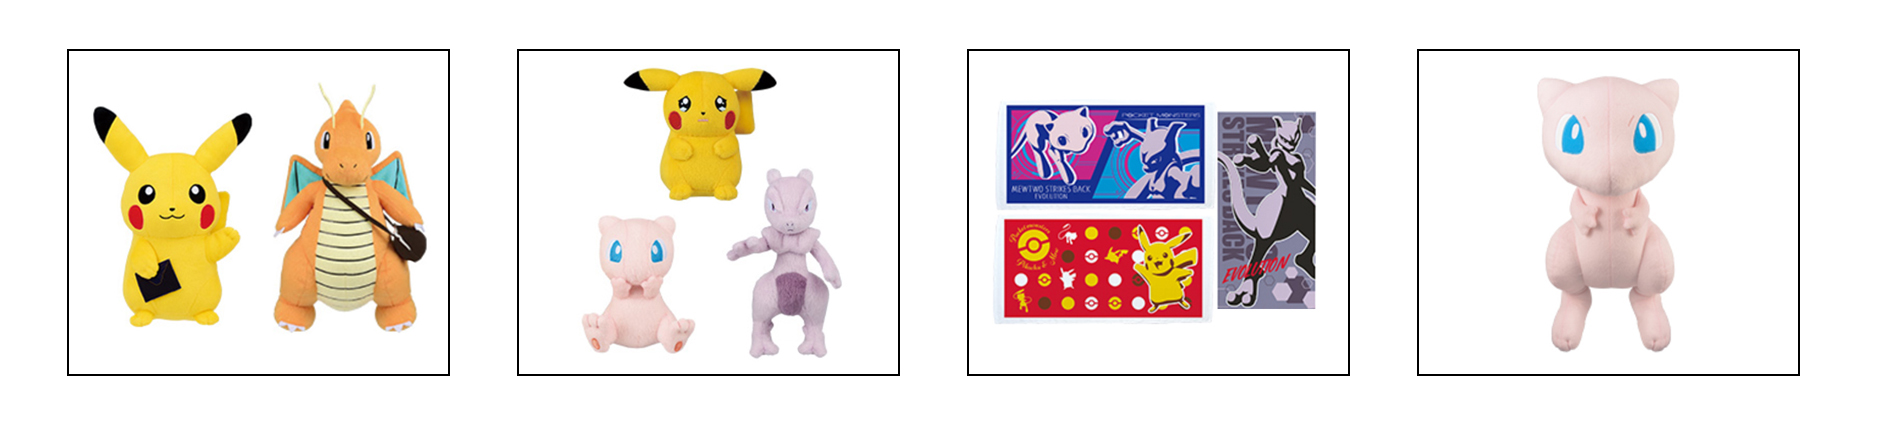 Banpresto Pokemon Sun Moon Mewtwo Strikes Back Evolution